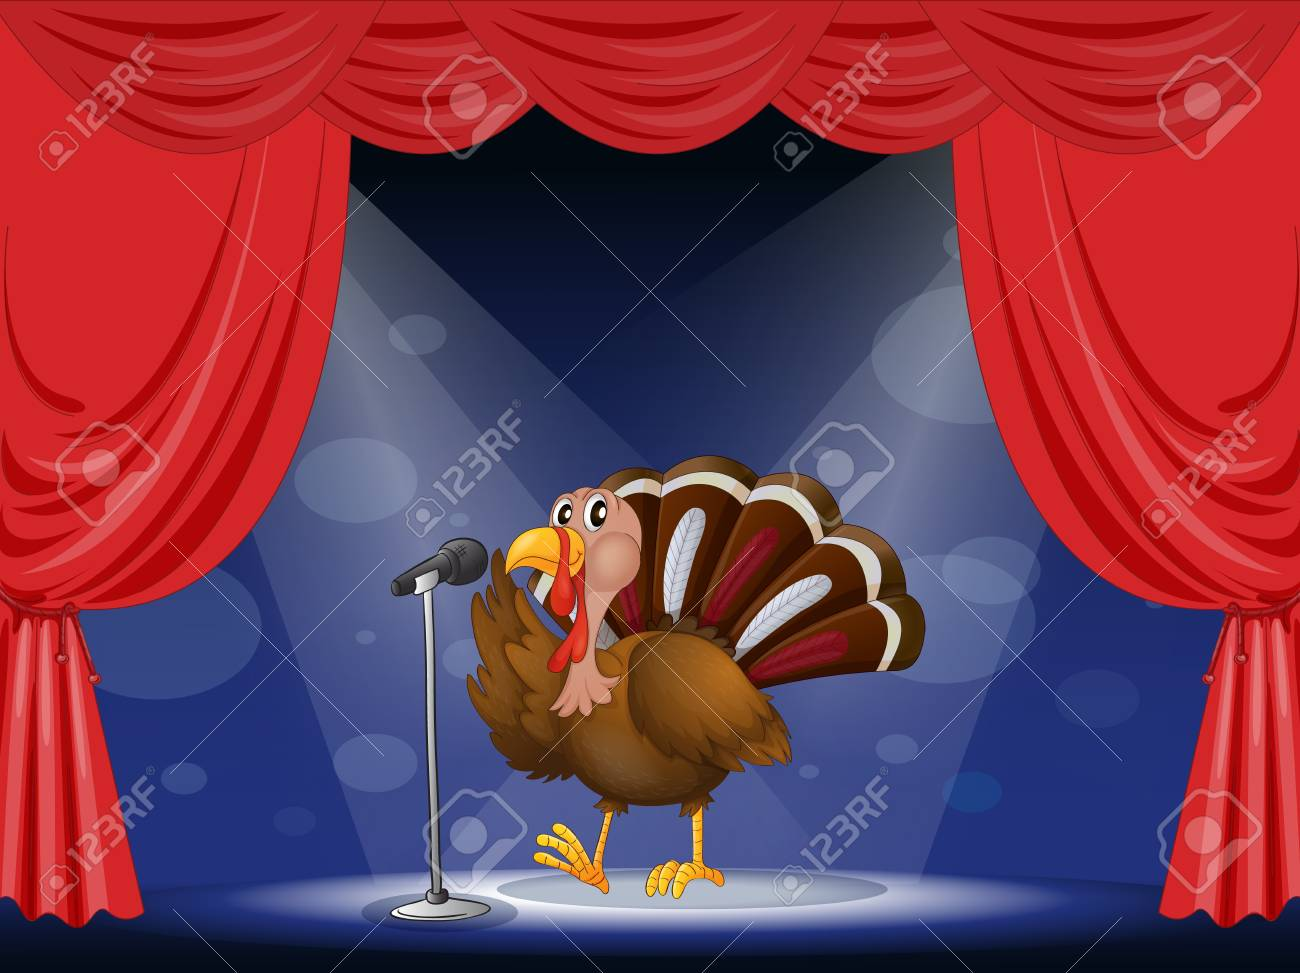 Illustration of a turkey in the limelight Stock Vector - 17892668